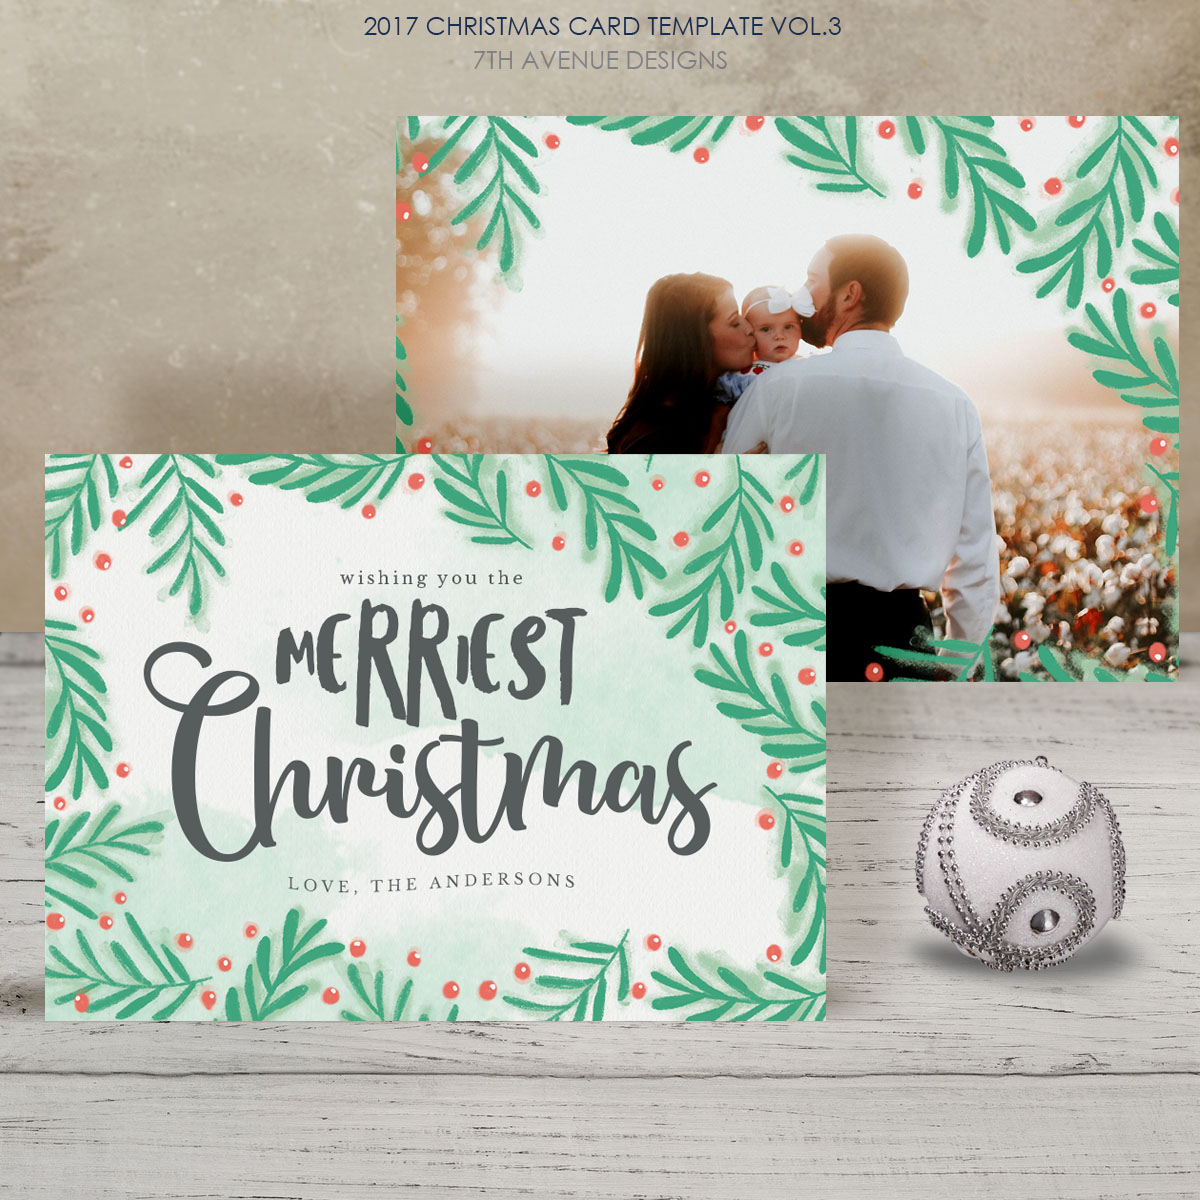 2017 Christmas Card Templates vol.3